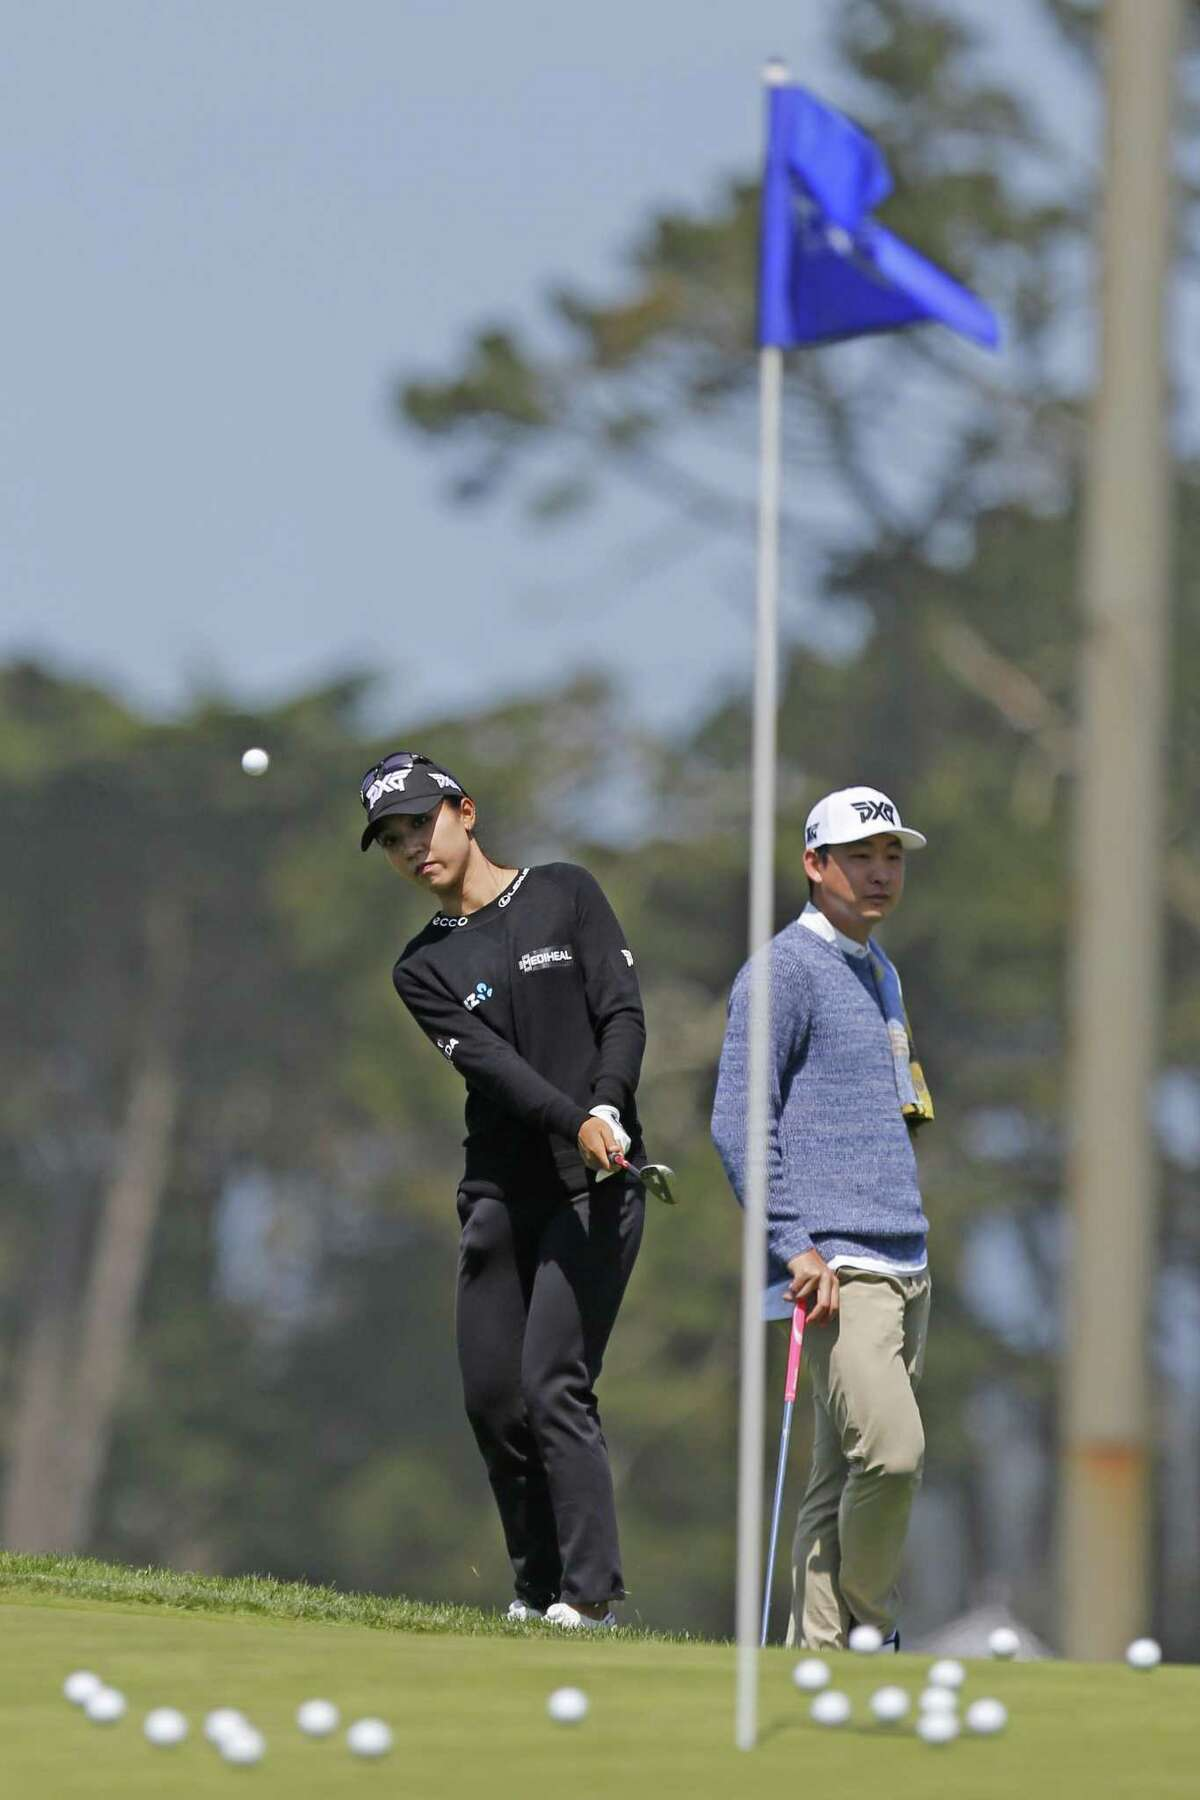 Lydia Ko practices at Lake Merced Golf Club on Wednesday, May 1, 2019, in San Francisco, Calif.